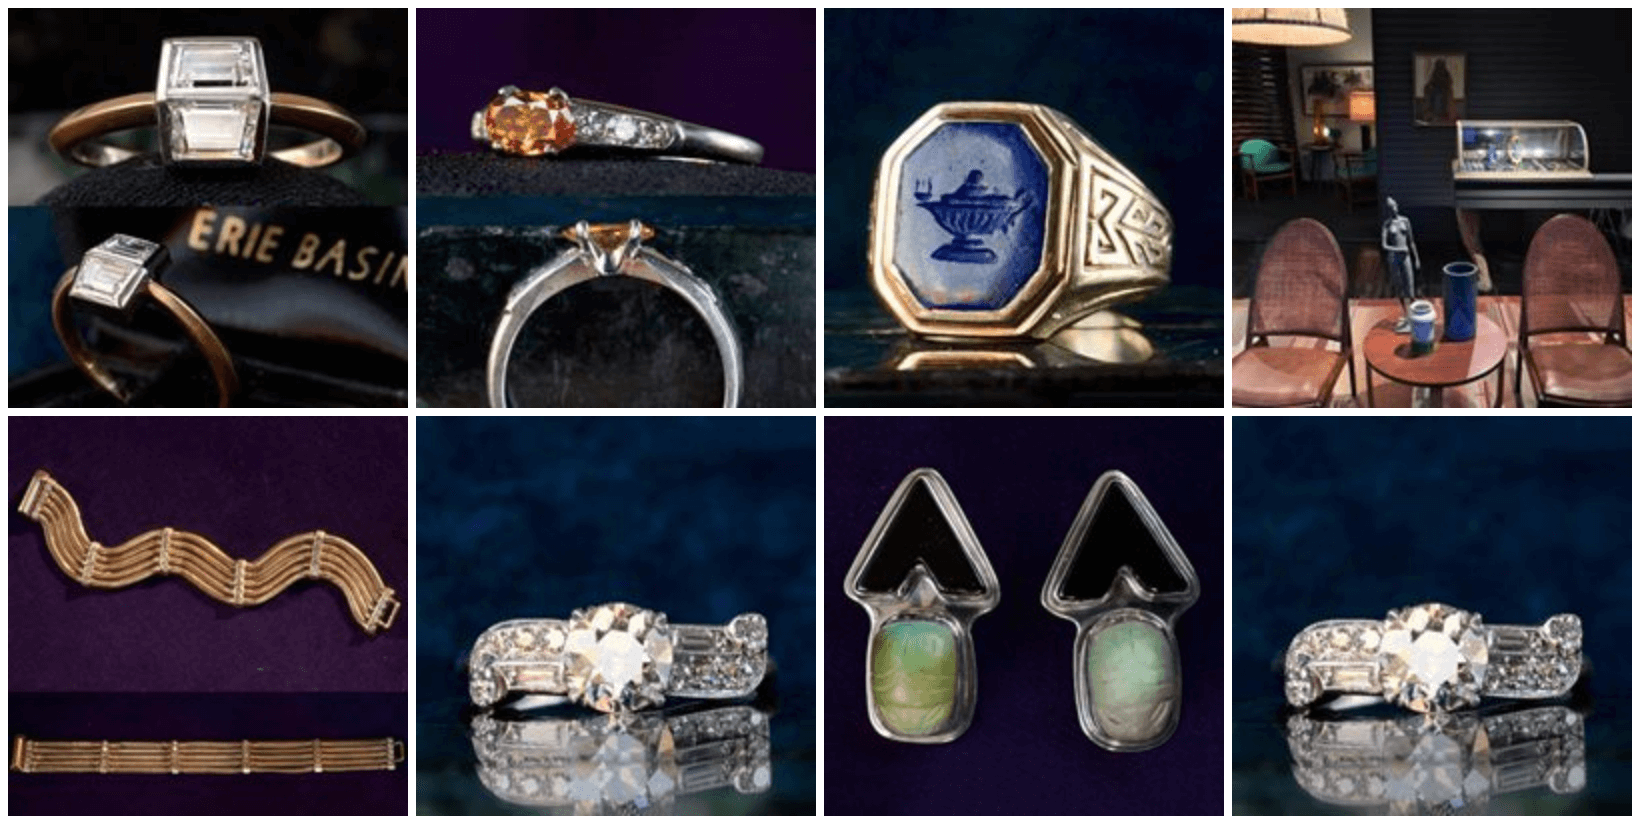 Curiosities Insider Interviews Kelley Louise Erie Basin Jewelry Antiques